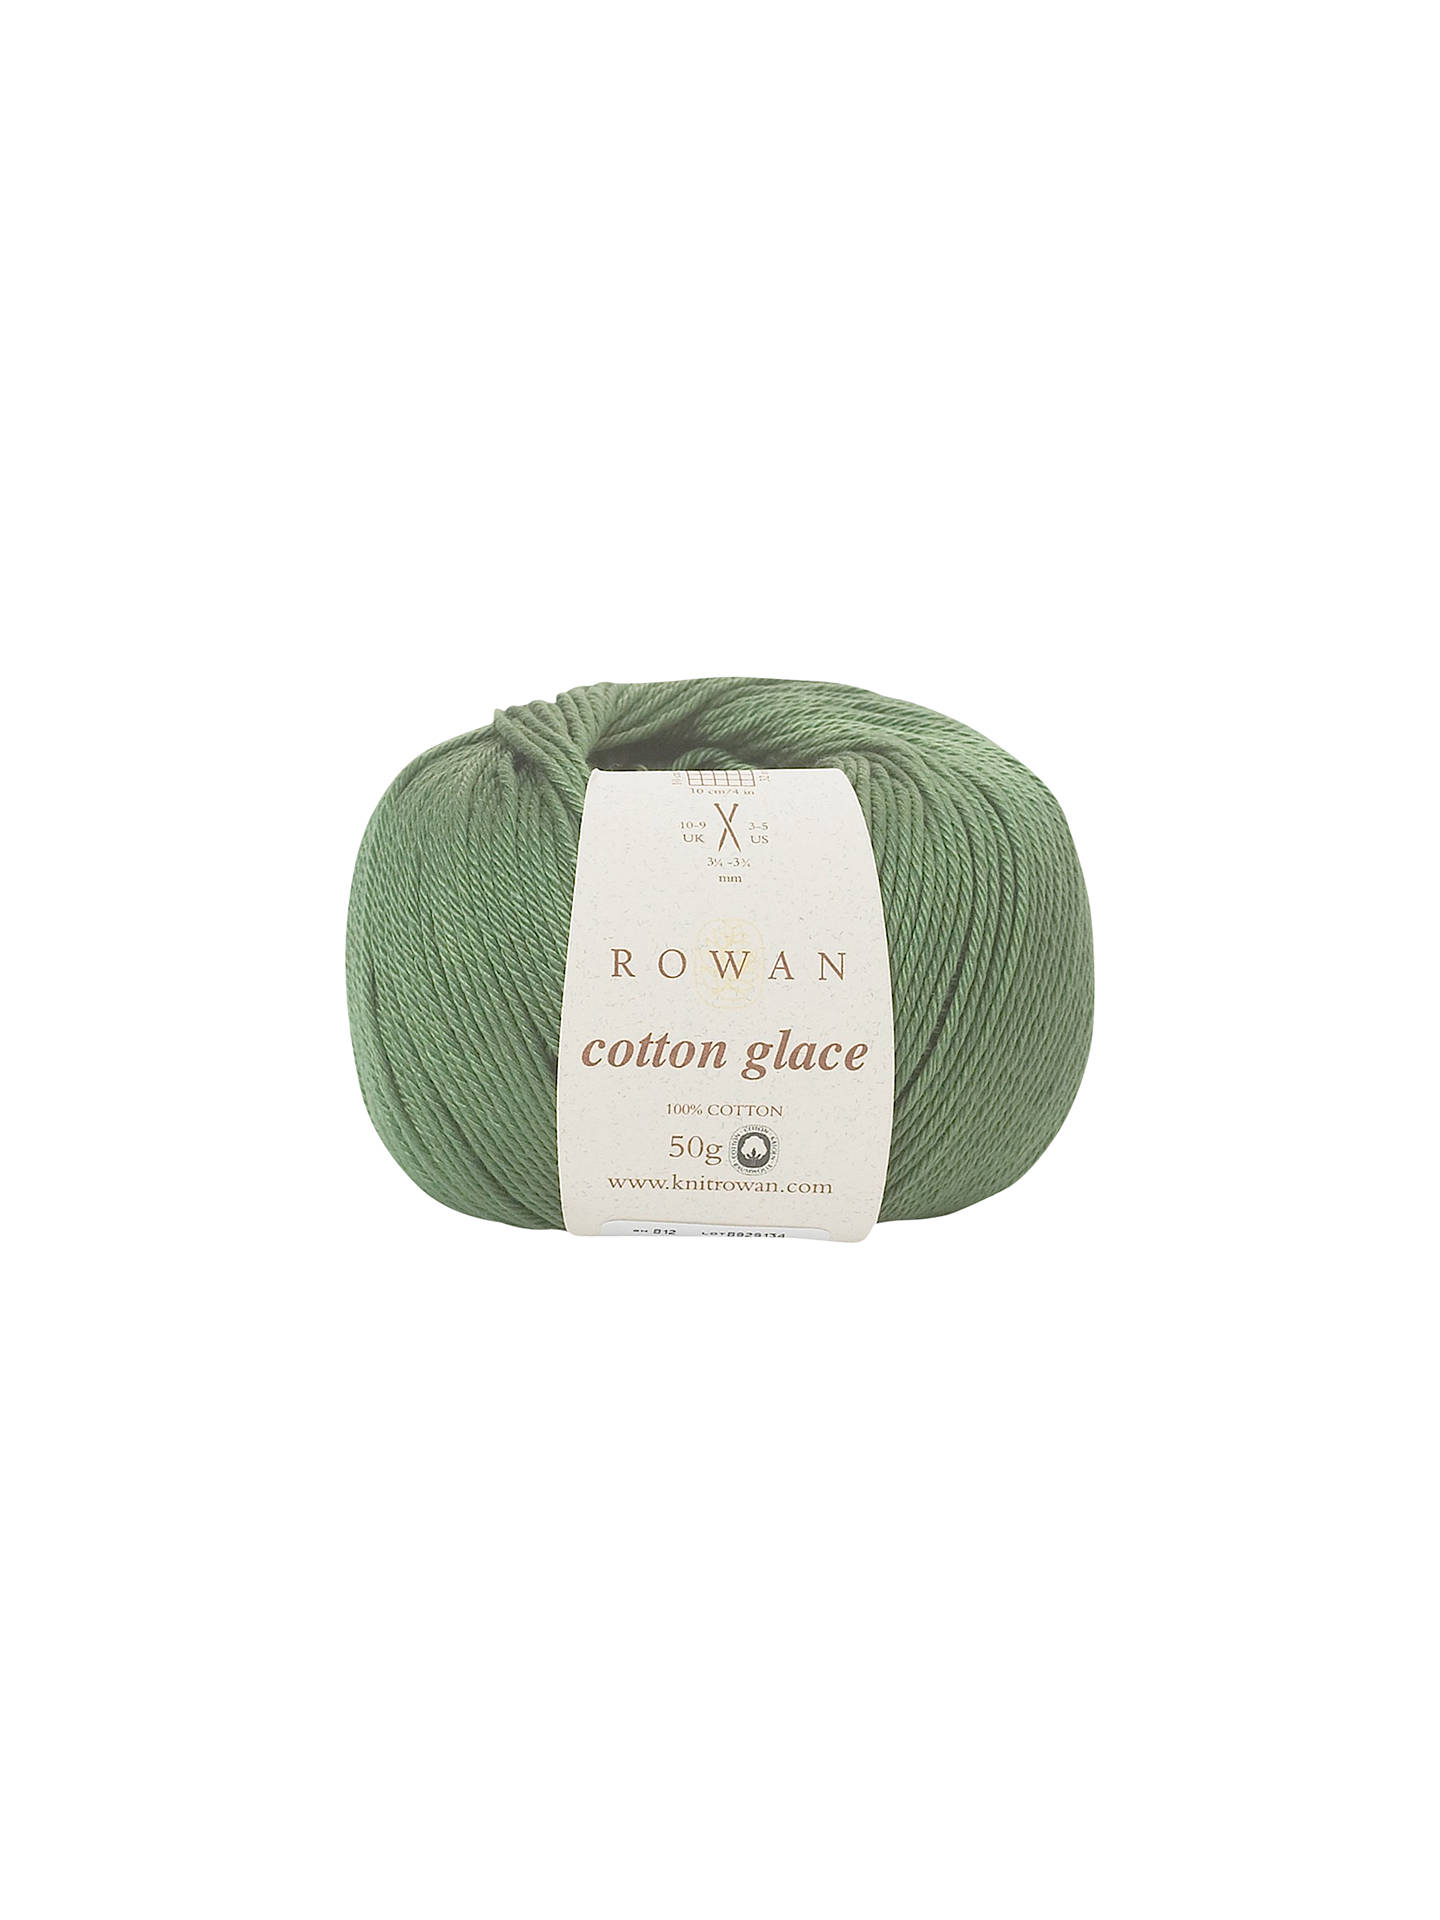 Buy Rowan Cotton Glace Yarn, 50g, Ivy 812 Online at johnlewis.com